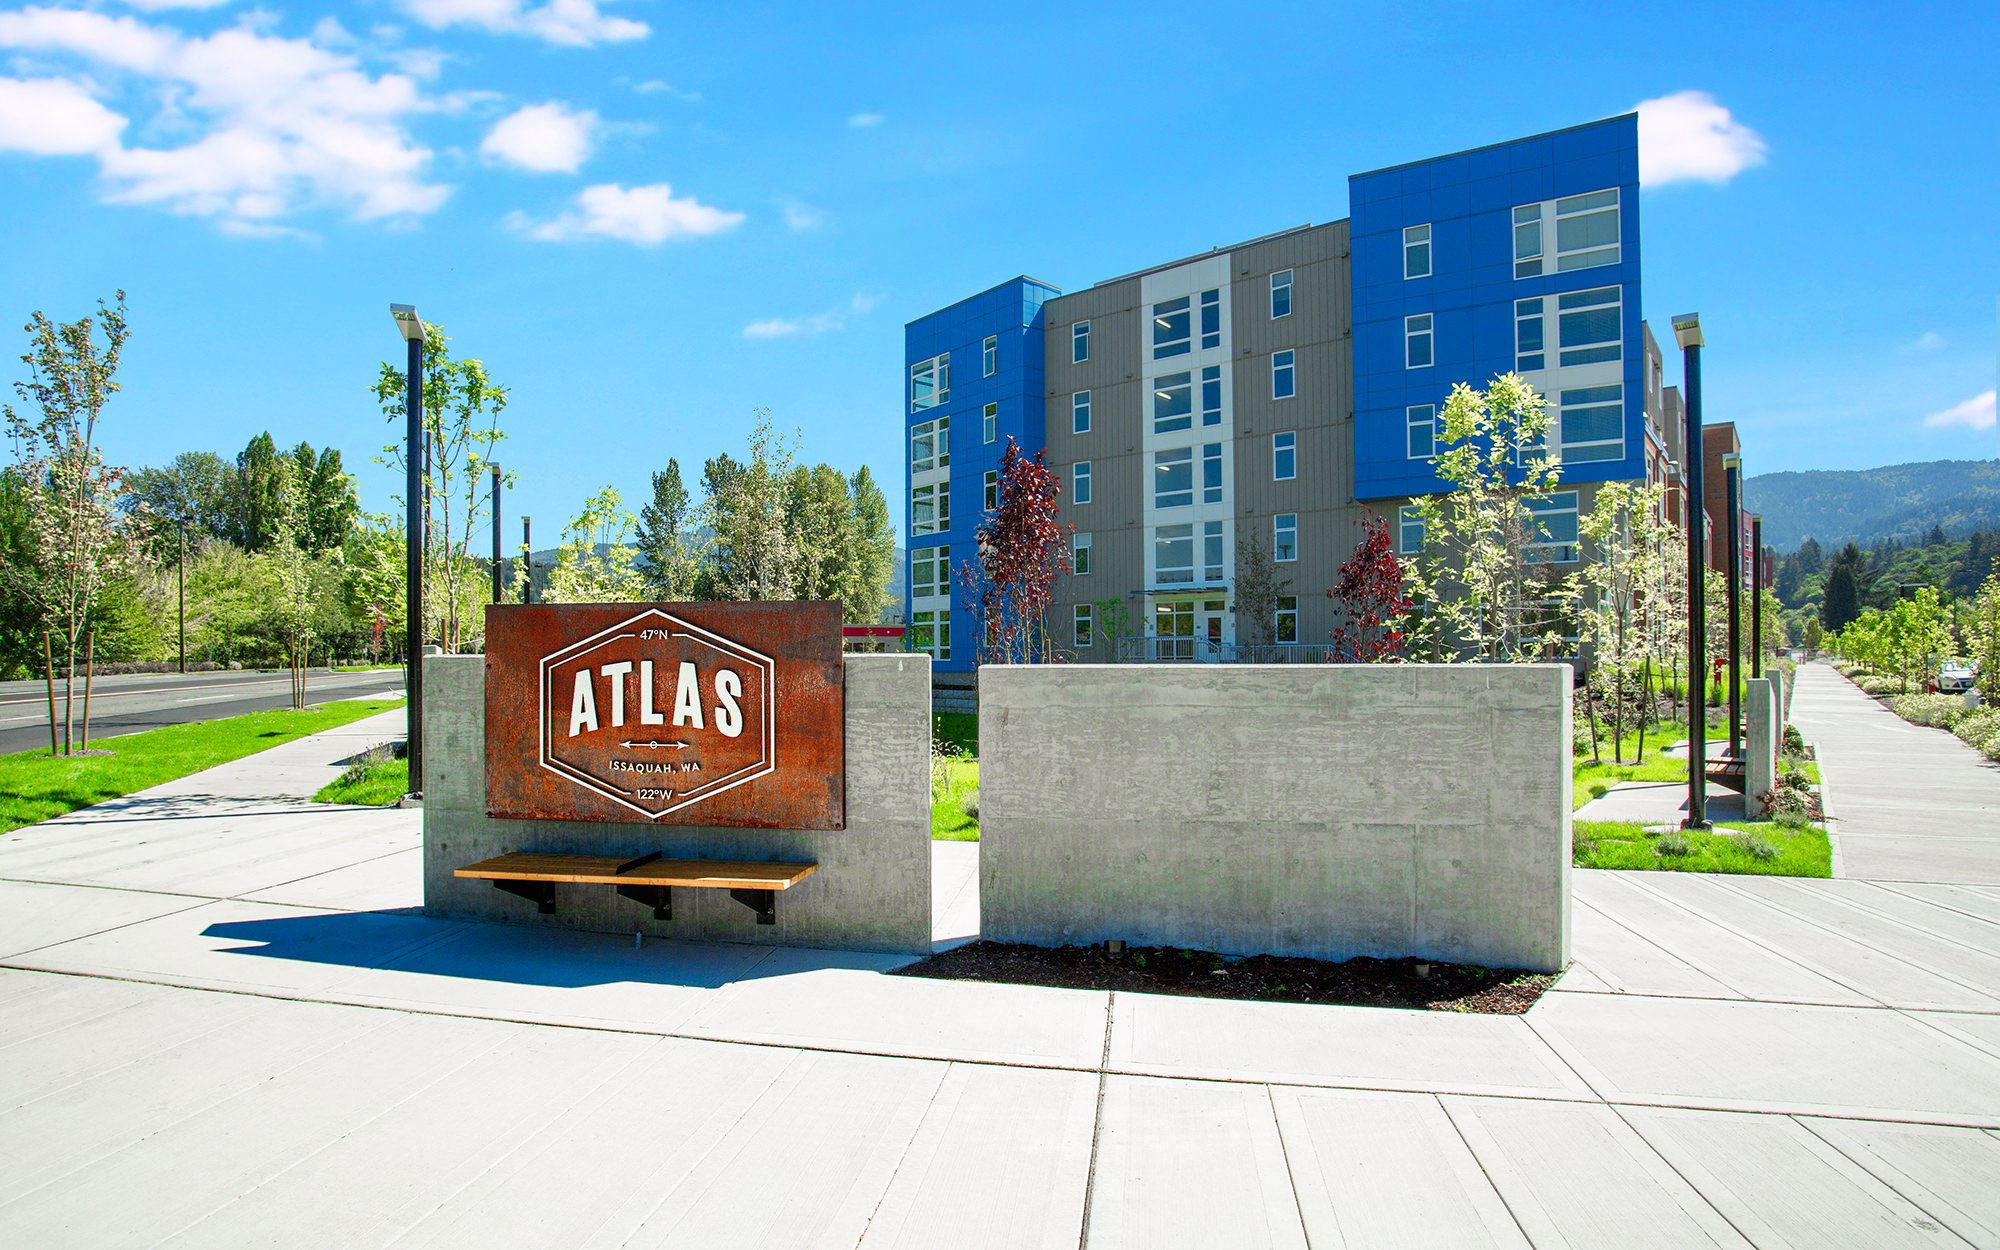 Atlas Apartments Monument Sign